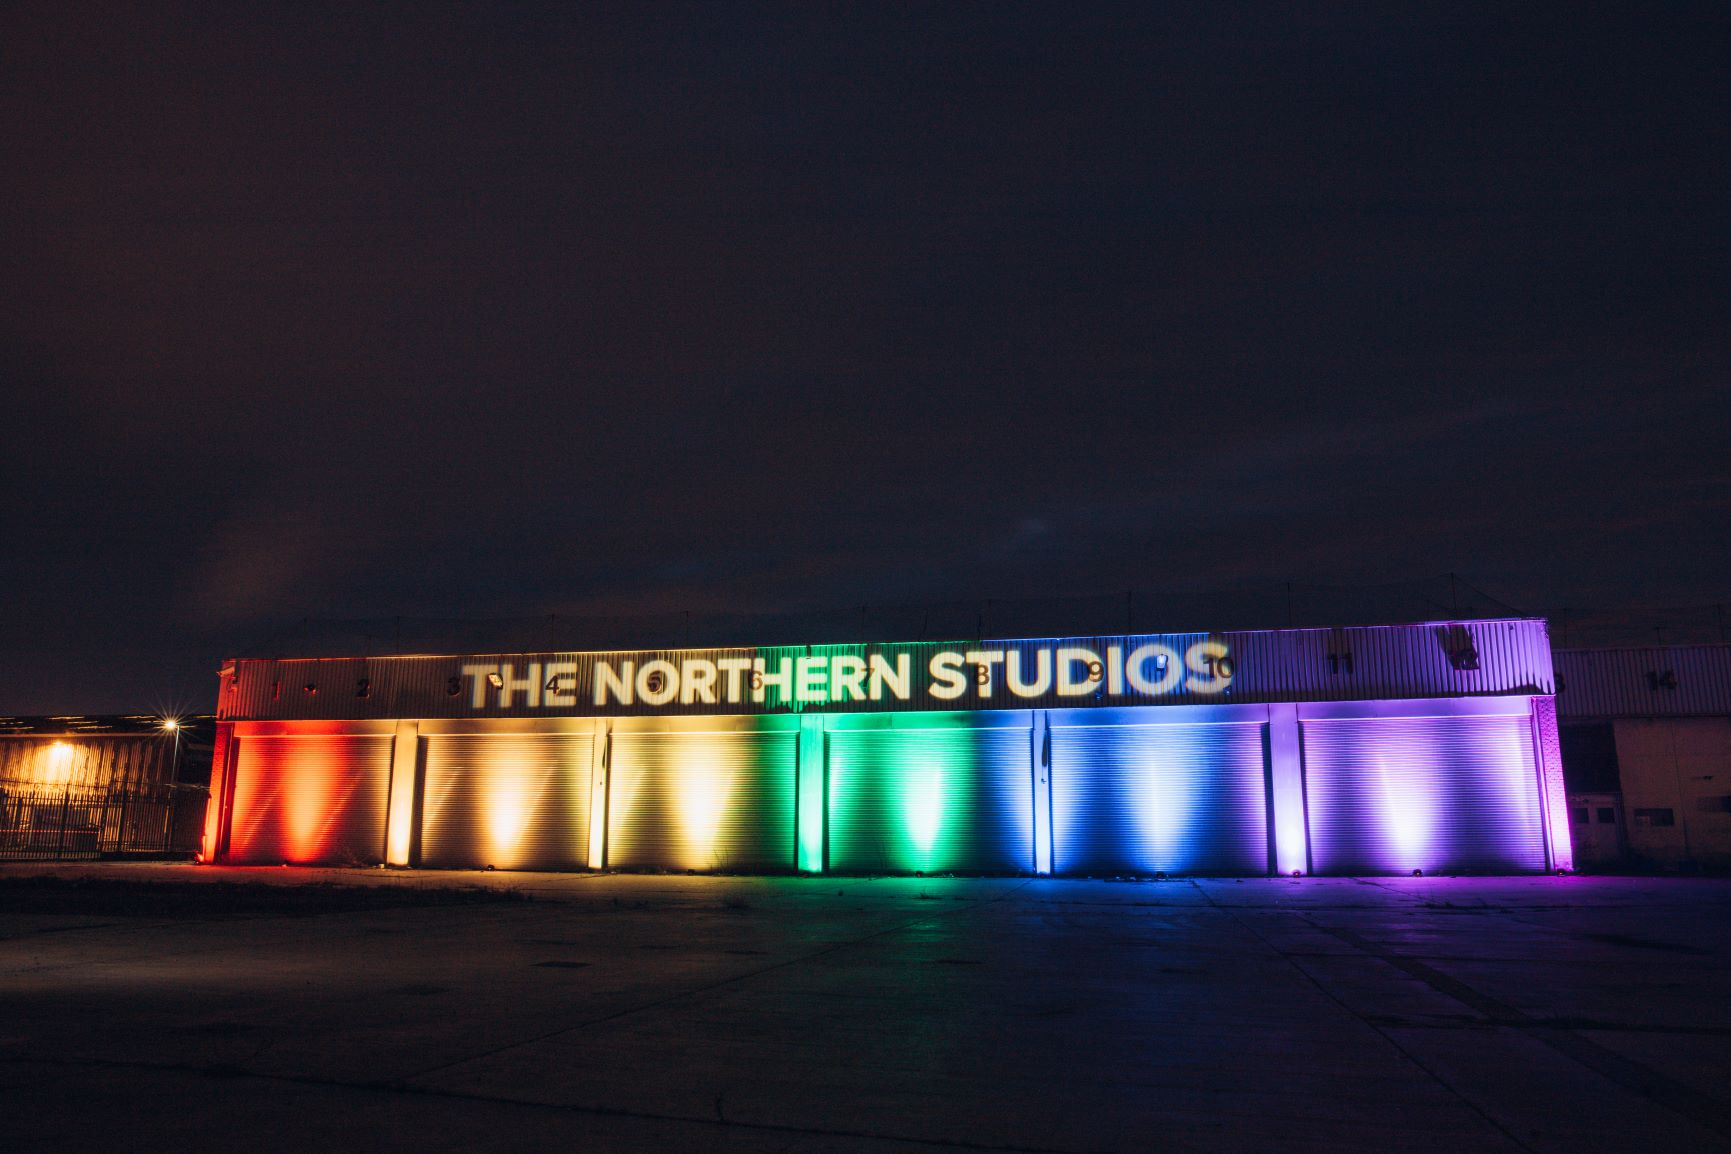 The front of the Northern Studios building illuminated